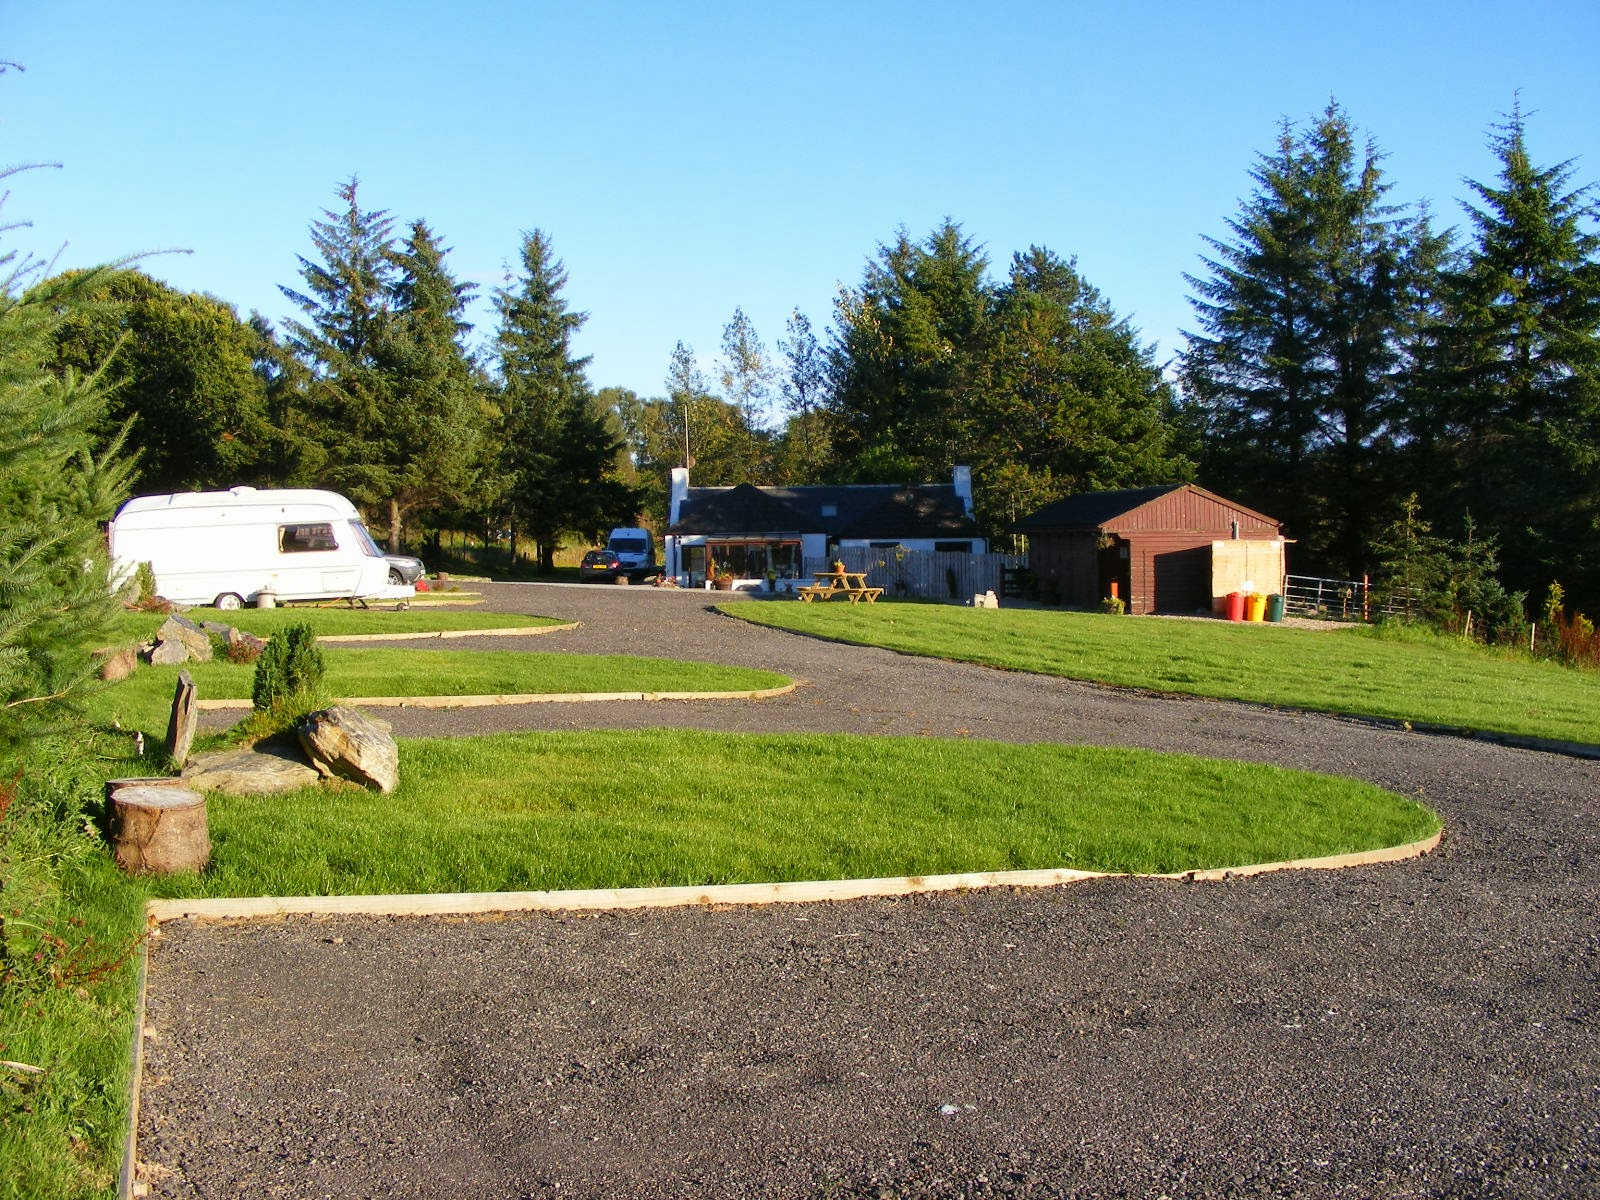 Campsites For Sale: Strathisla Certificated Campsite for